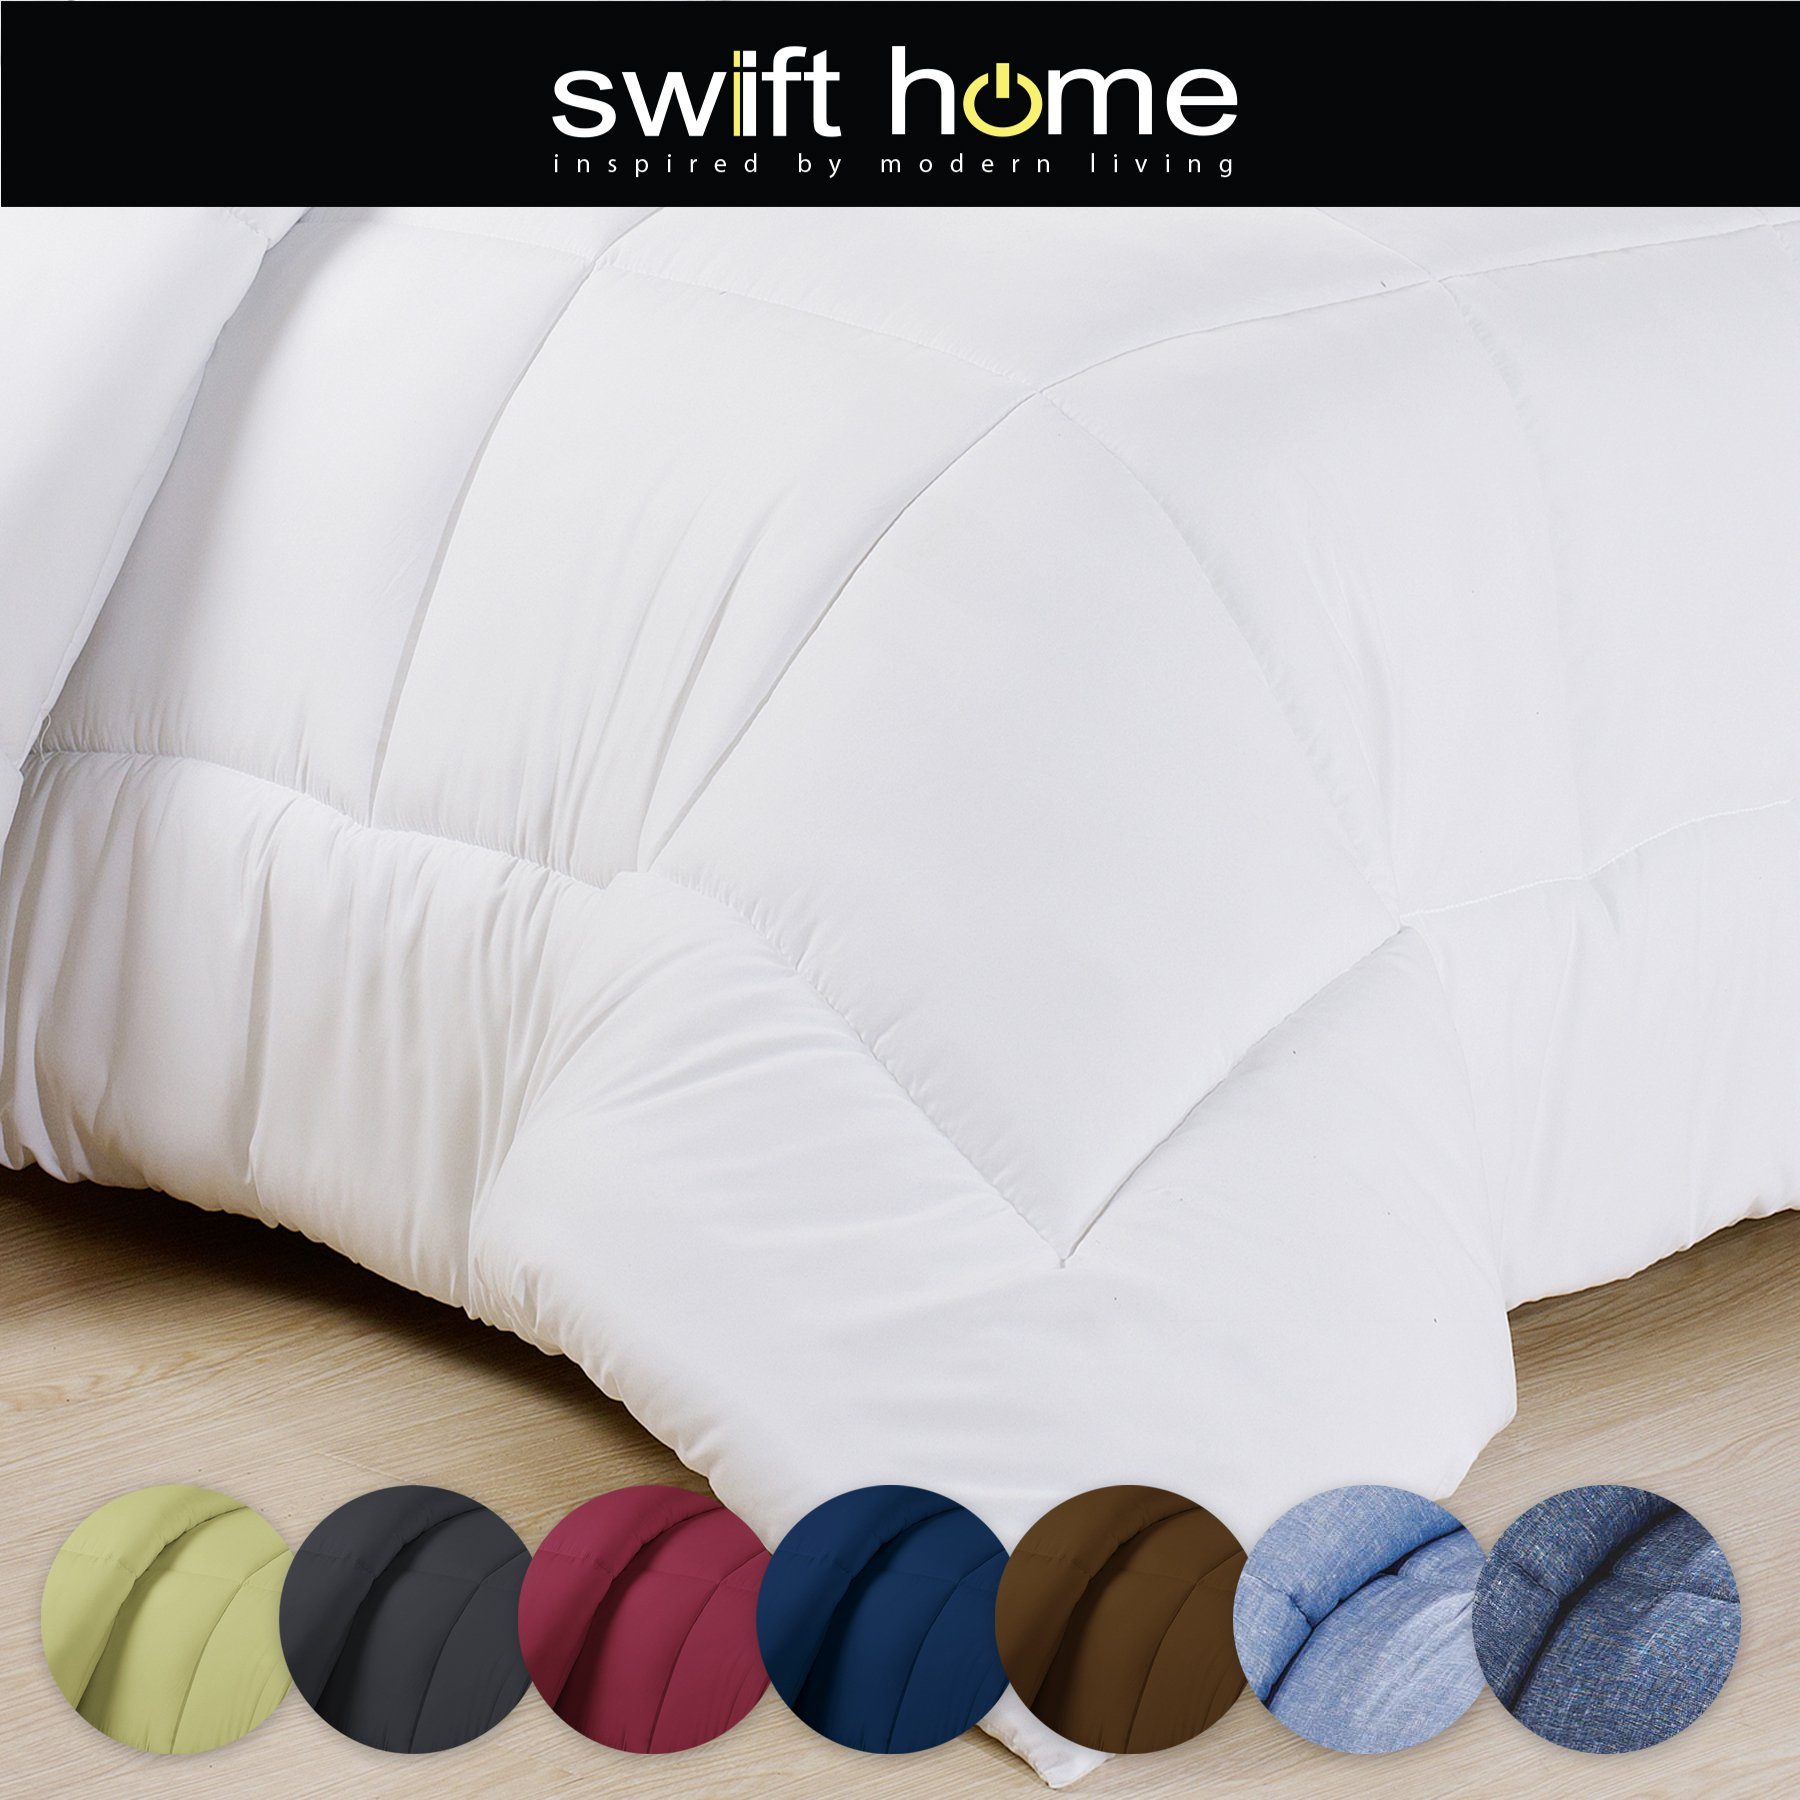 Swift Home All-Season Extra Soft Luxurious Classic Light-Warmth Goose Down-Alternative Comforter, Queen 90'' x 90'', Navy by Swift Home (Image #2)